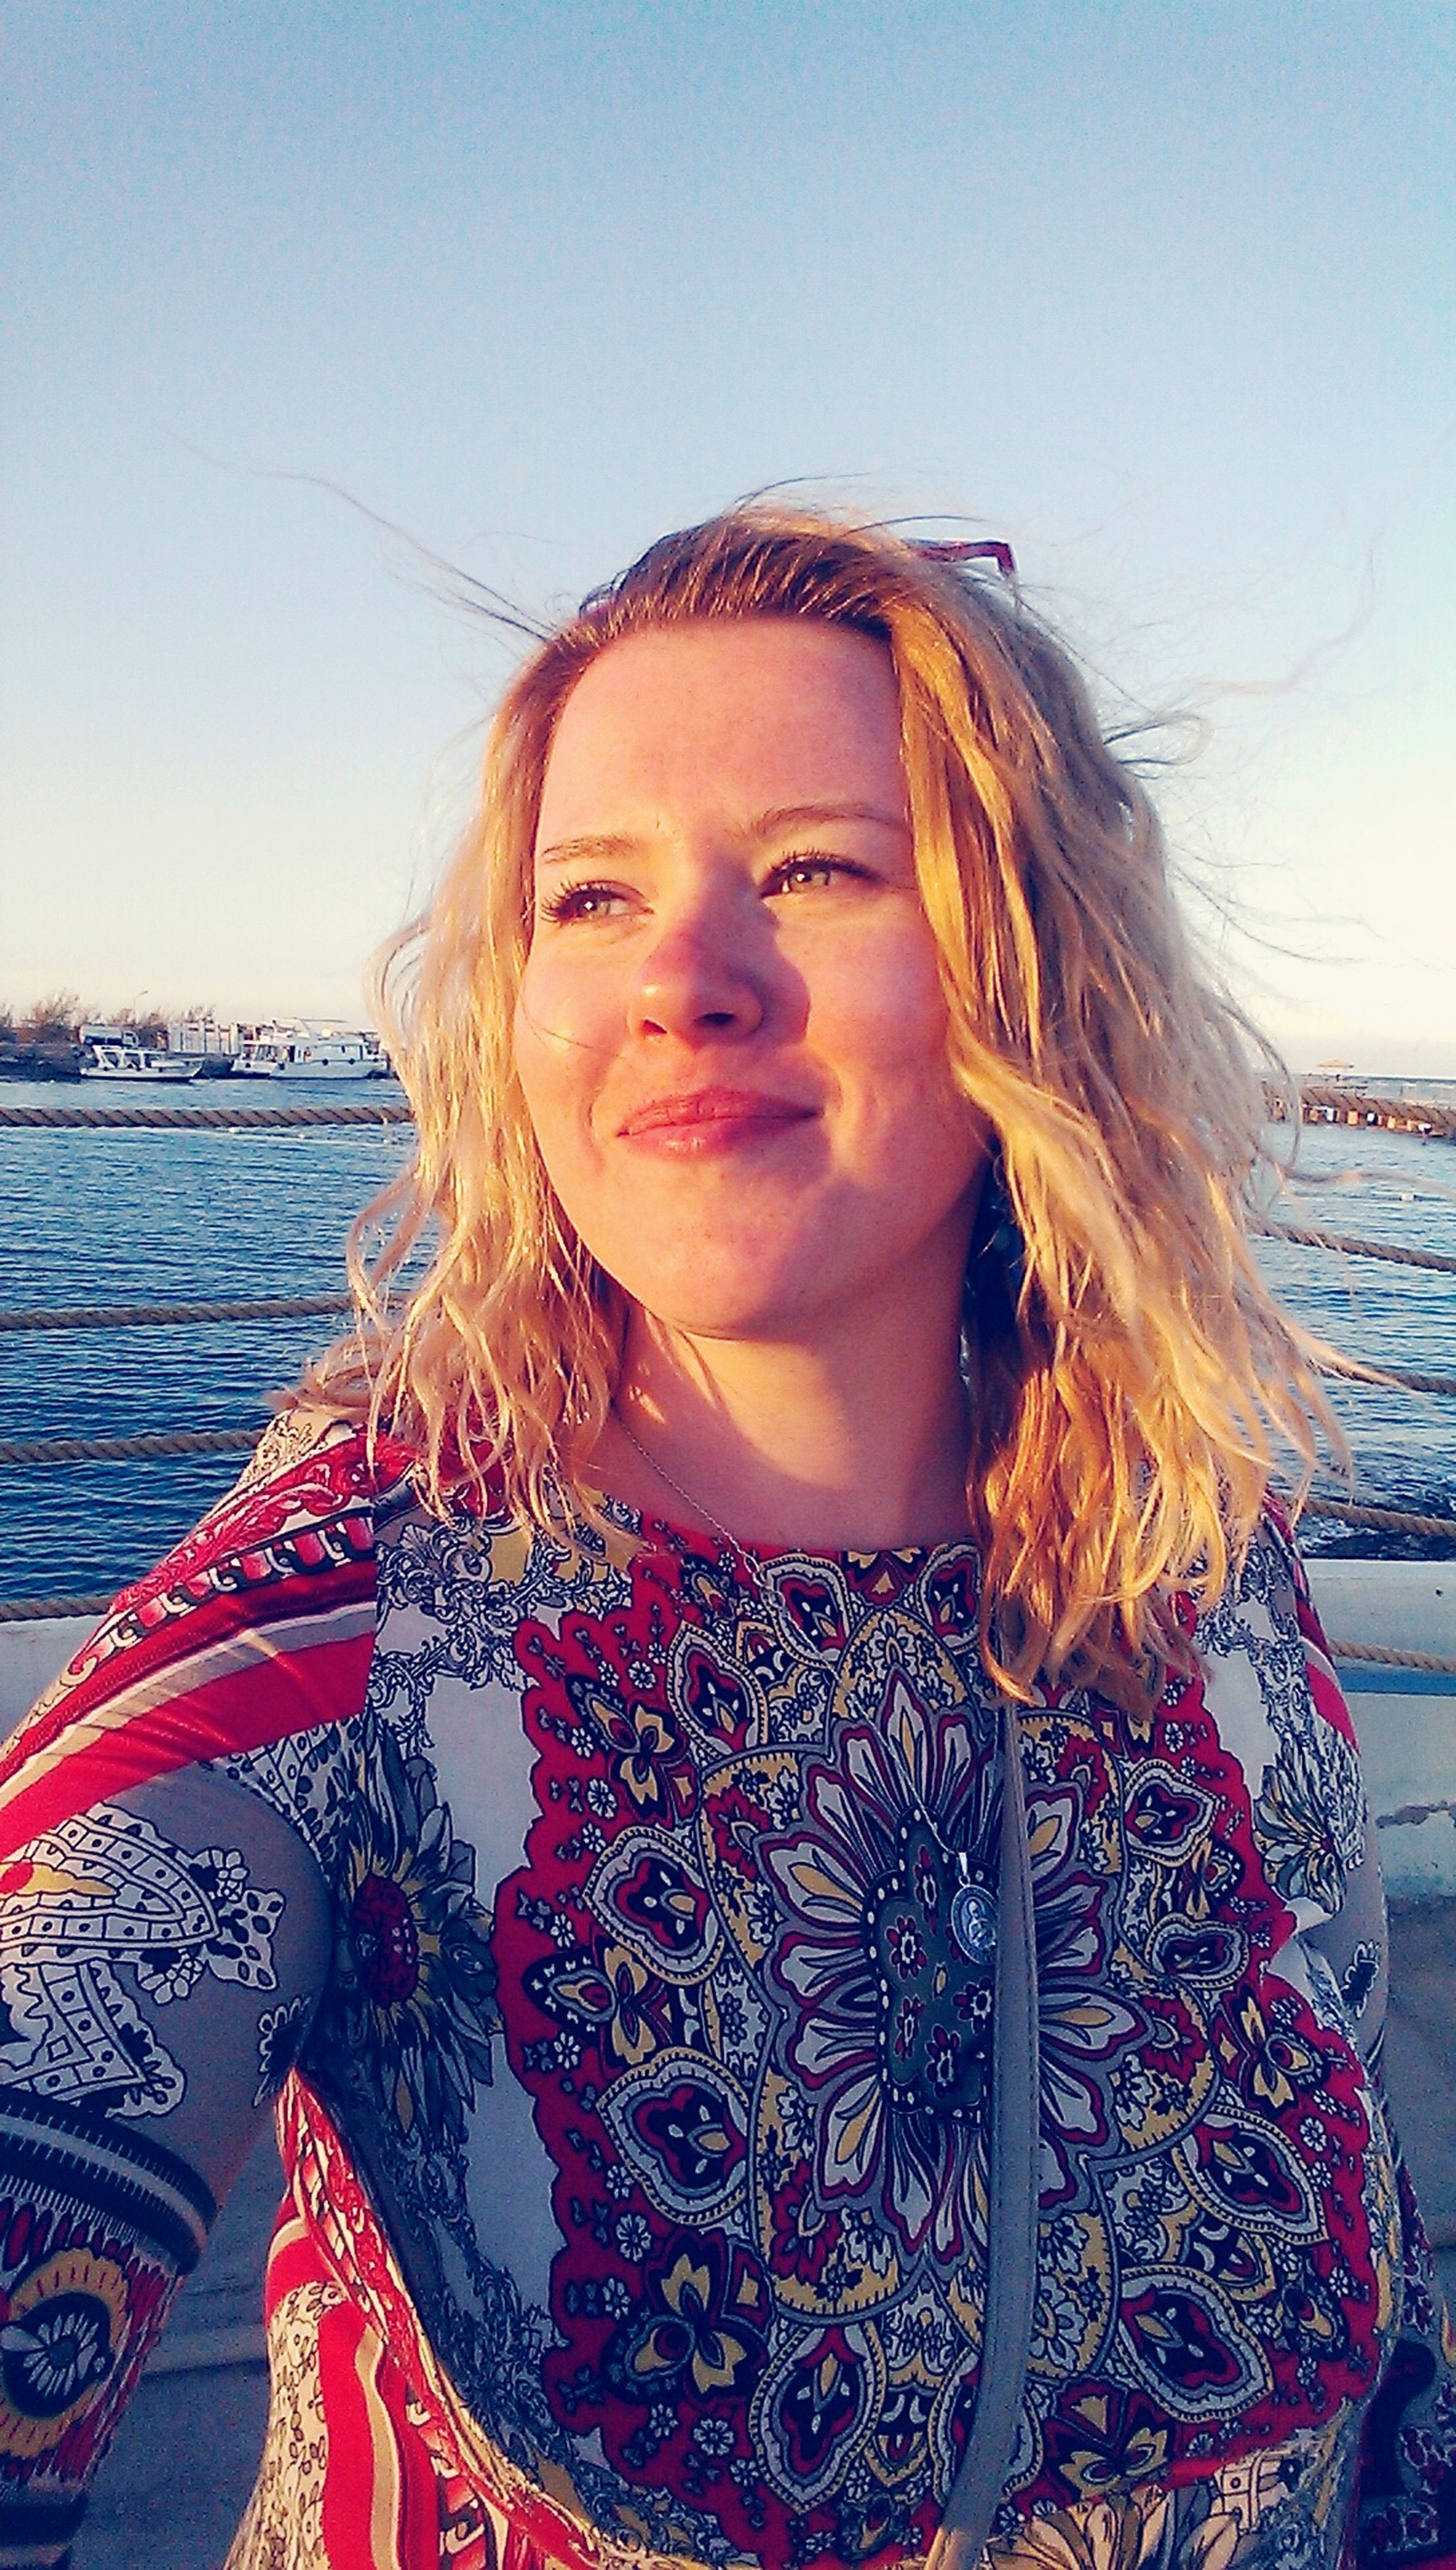 looking at camera, portrait, young adult, person, lifestyles, young women, leisure activity, water, front view, smiling, casual clothing, long hair, happiness, toothy smile, sea, headshot, standing